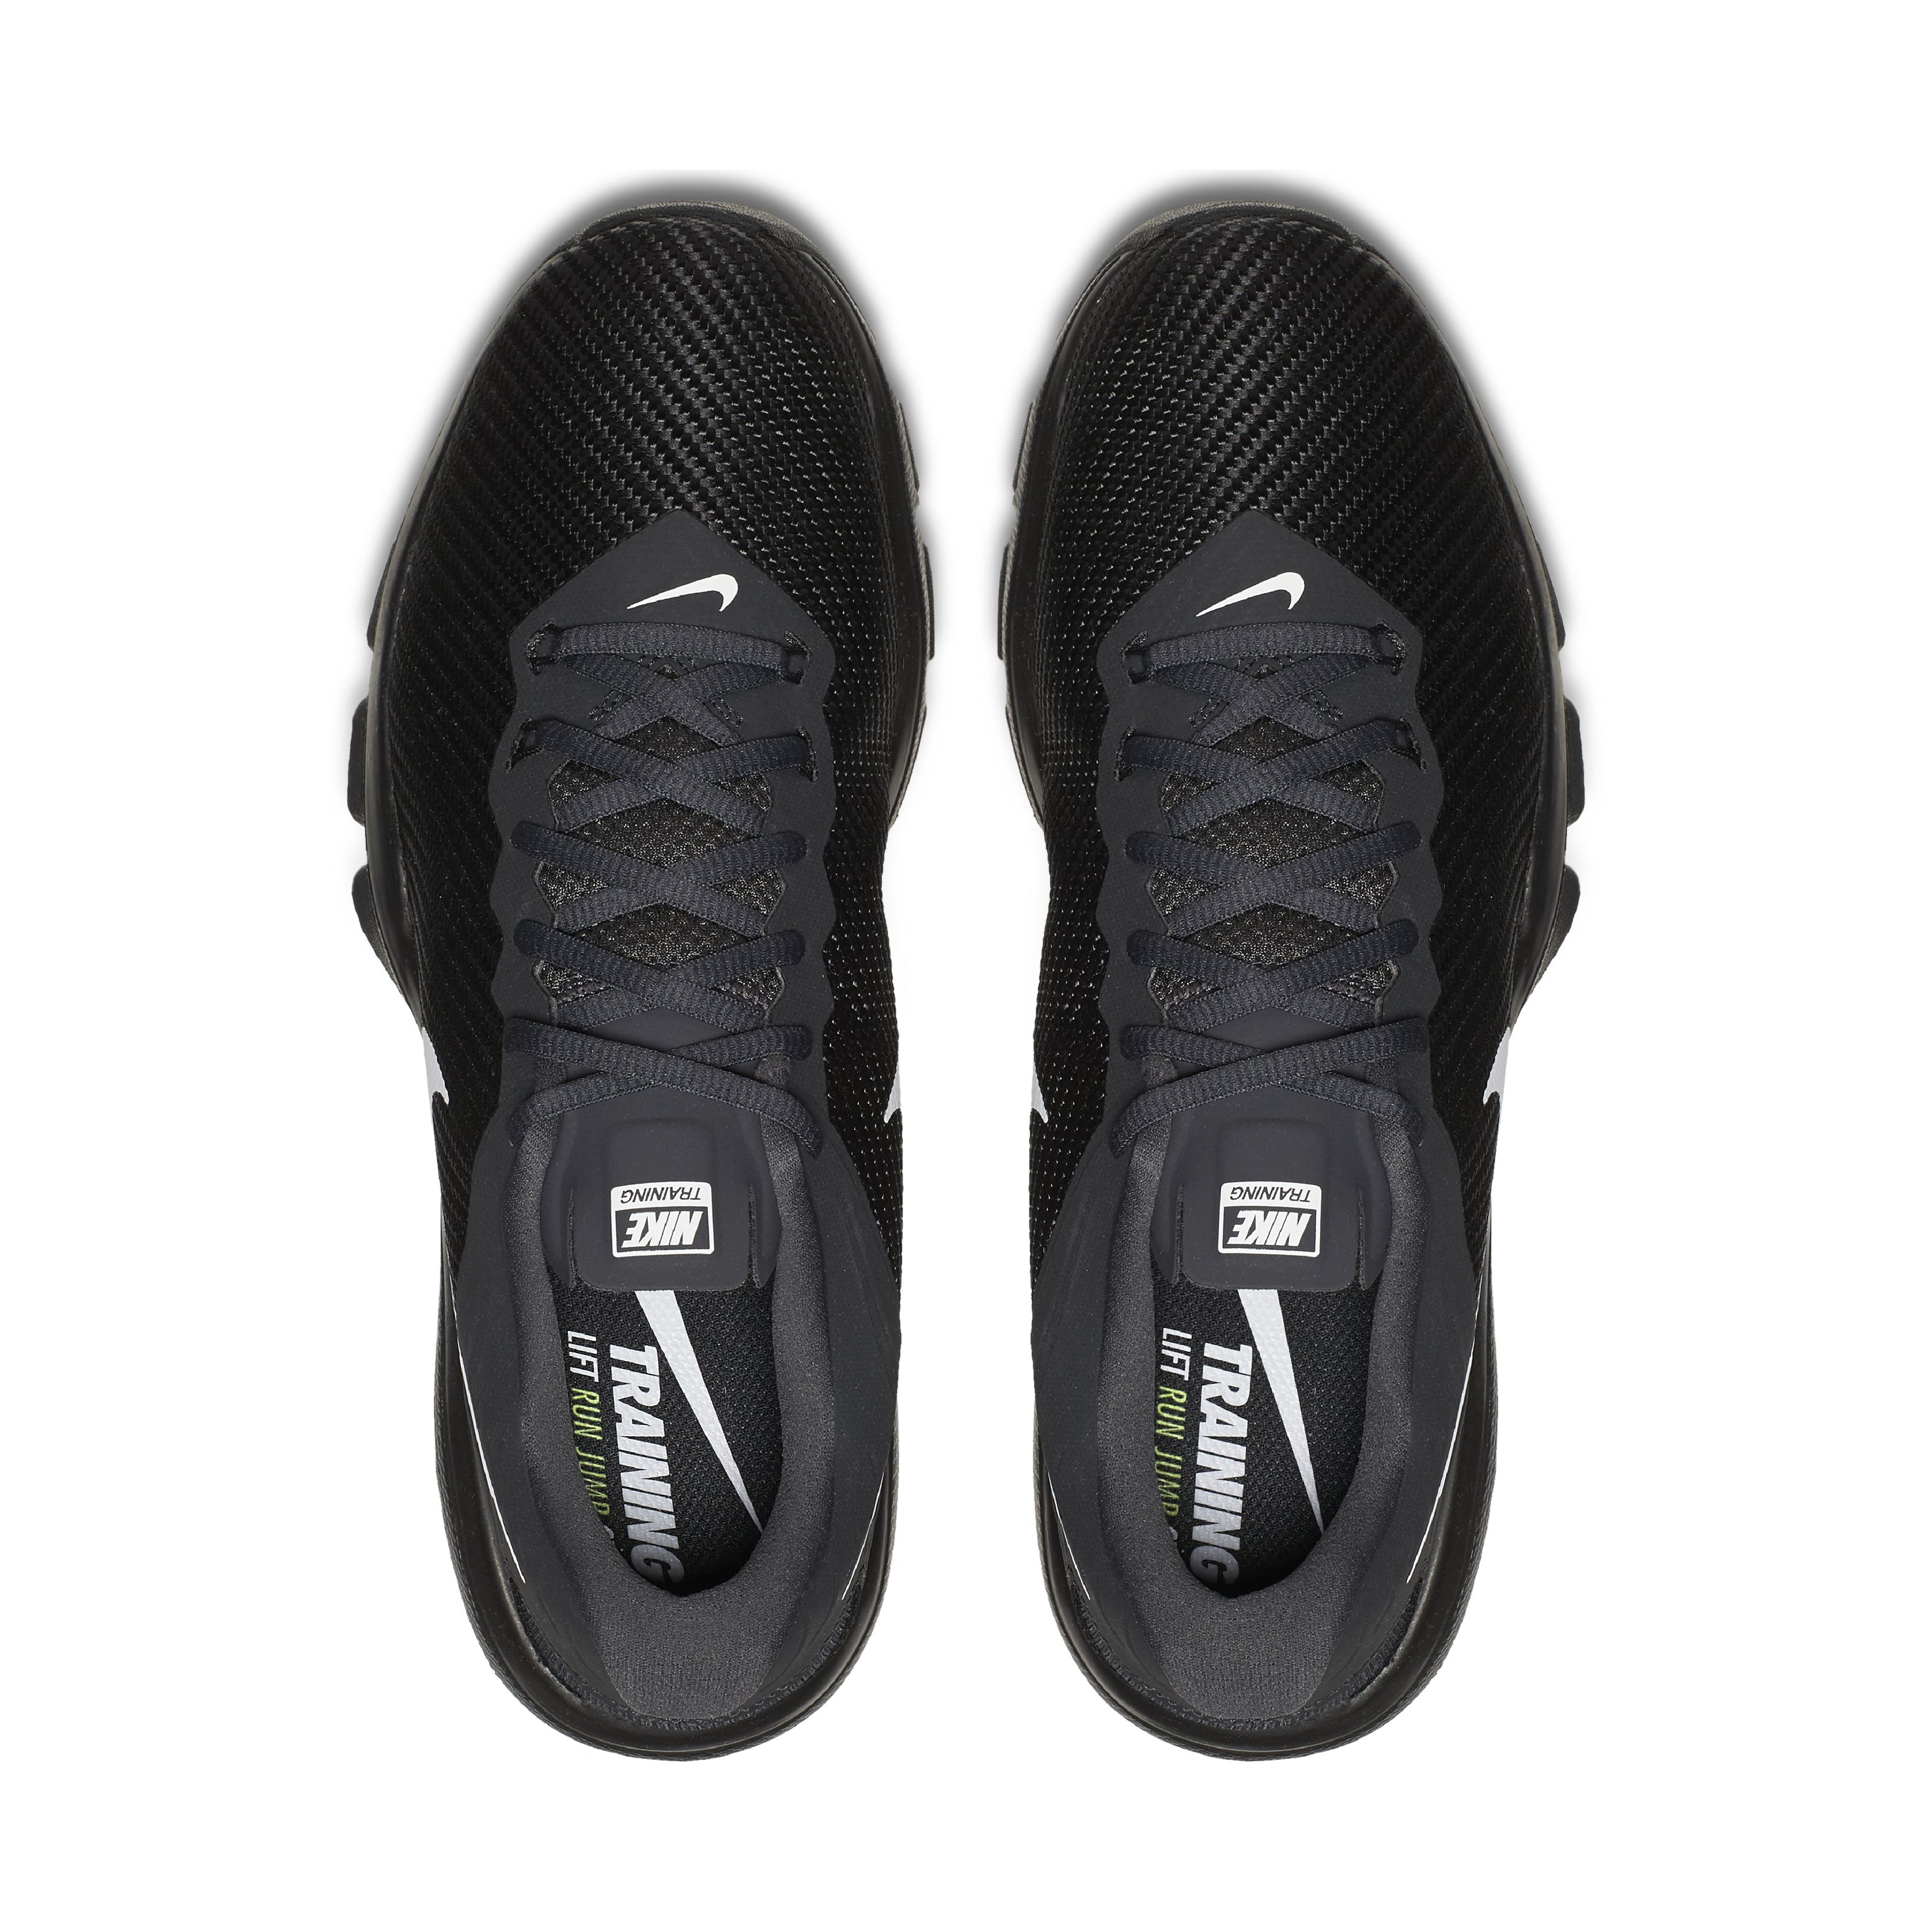 8b255cfb Мужские кроссовки Nike Air Max Full Ride Training 1.5  Black/White-Anthracite - фото